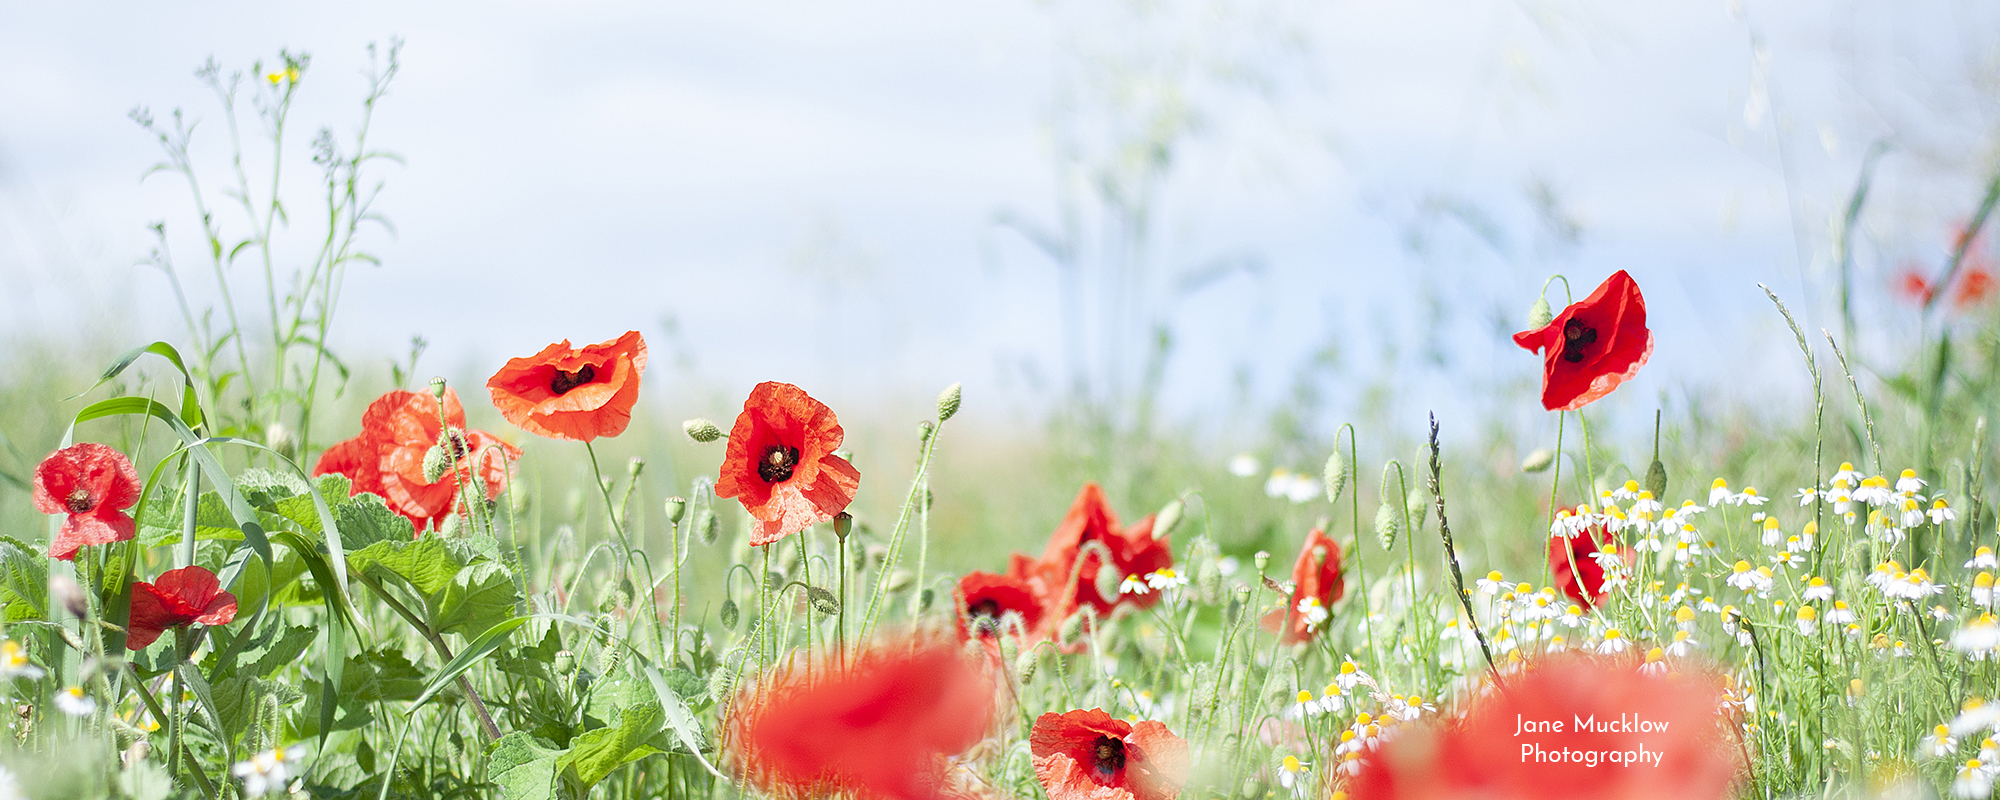 Photo by Jane Mucklow of poppies and wild chamomile, available as a canvas for your wall.